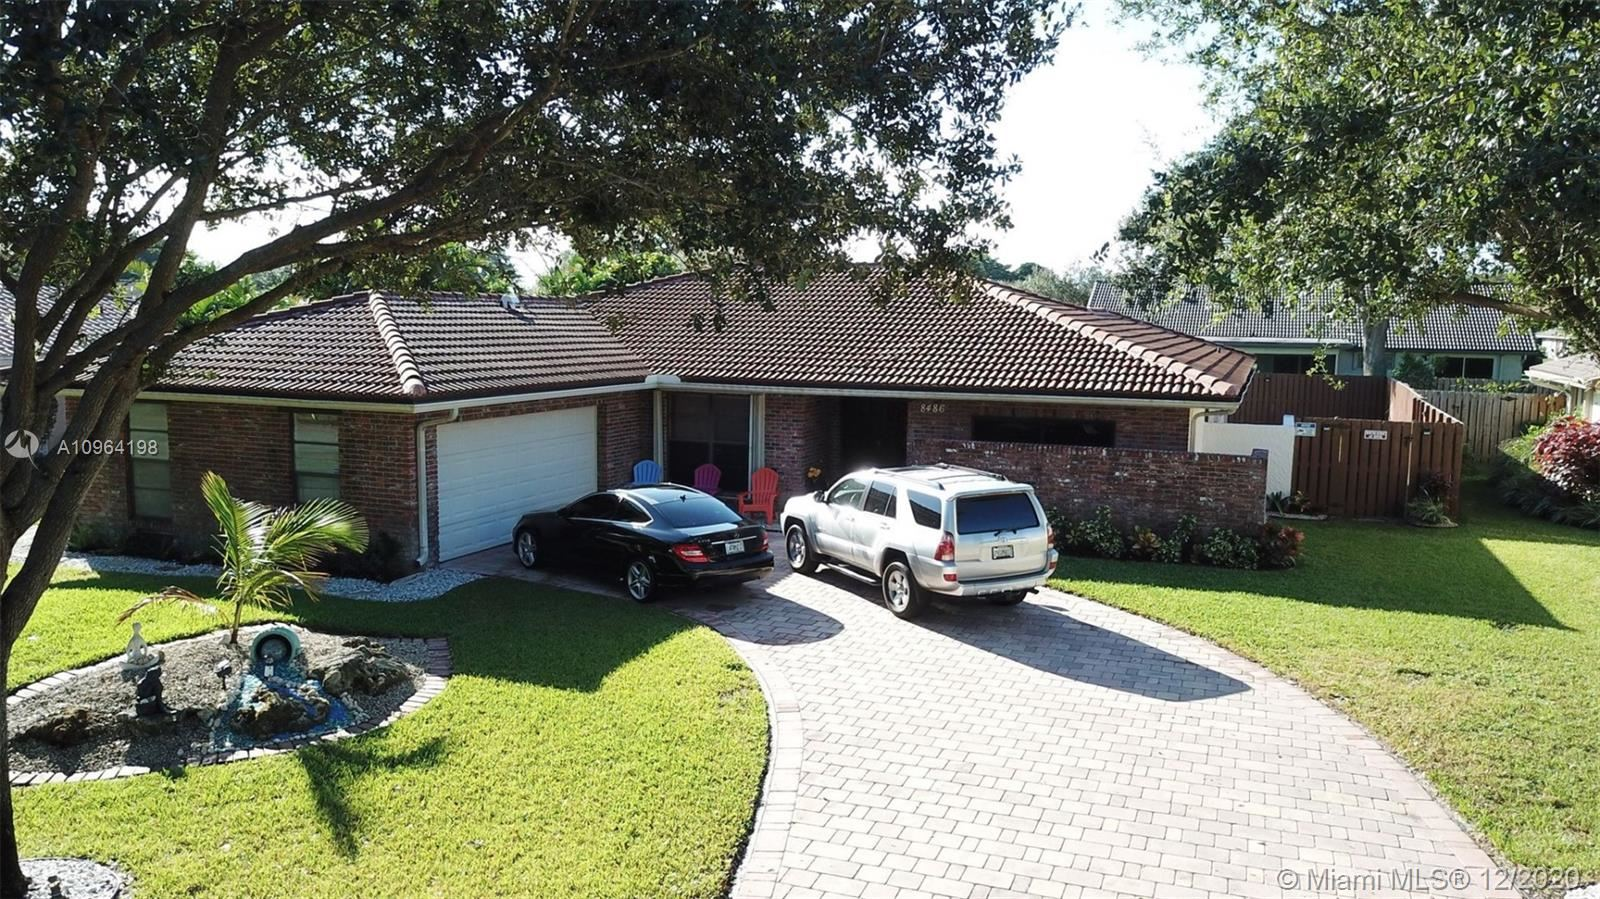 8486 NW 2nd Mnr, Coral Springs, FL 33071 - #: A10964198